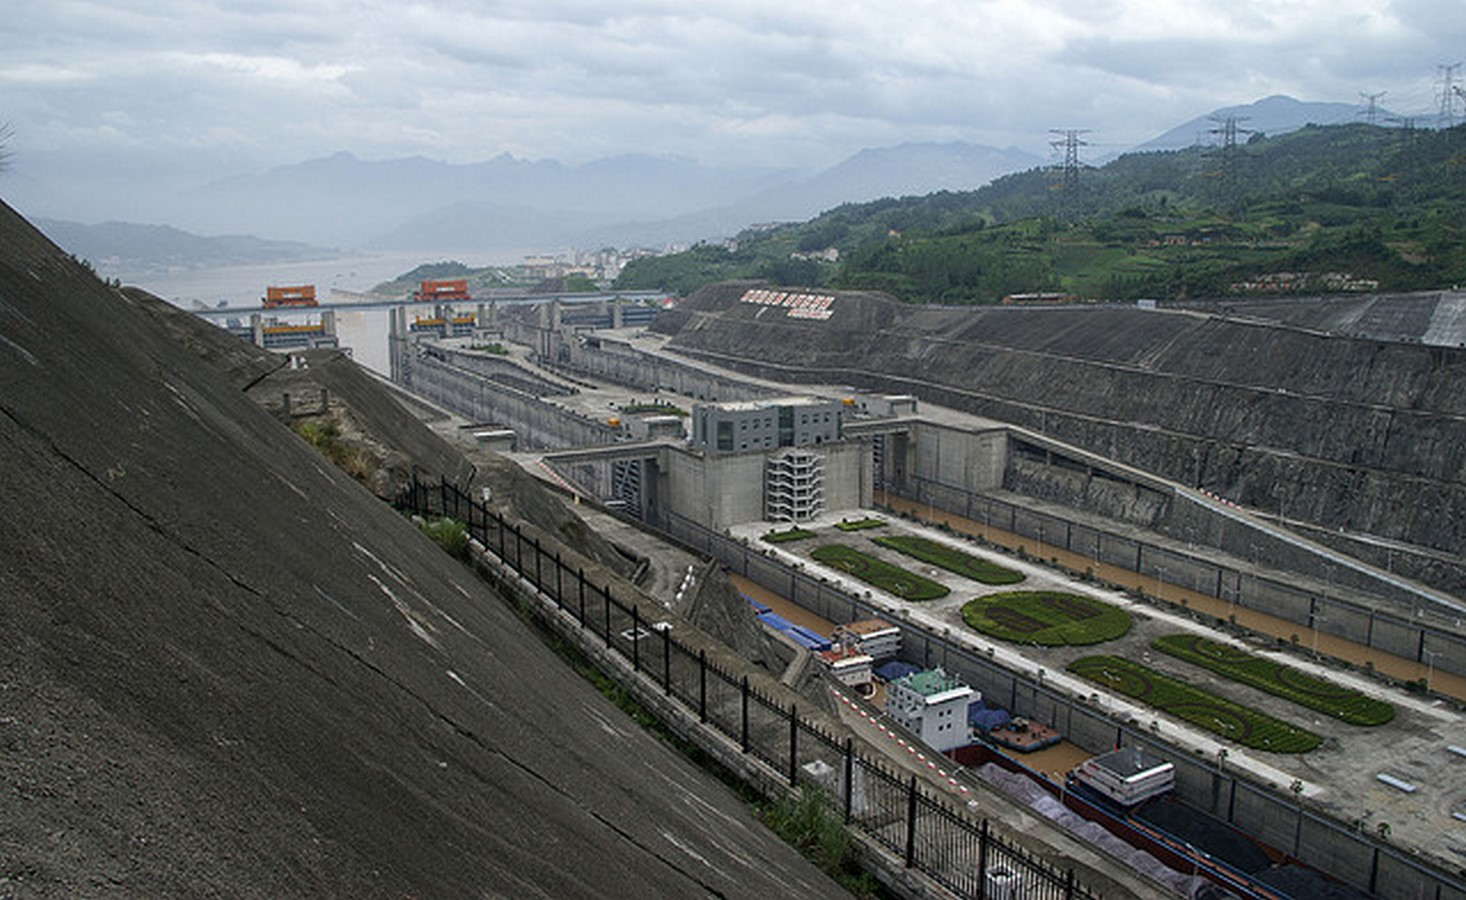 Three Gorges Dam by Pan Jiazheng- The world's Largest hydroelectric dam - Sheet11